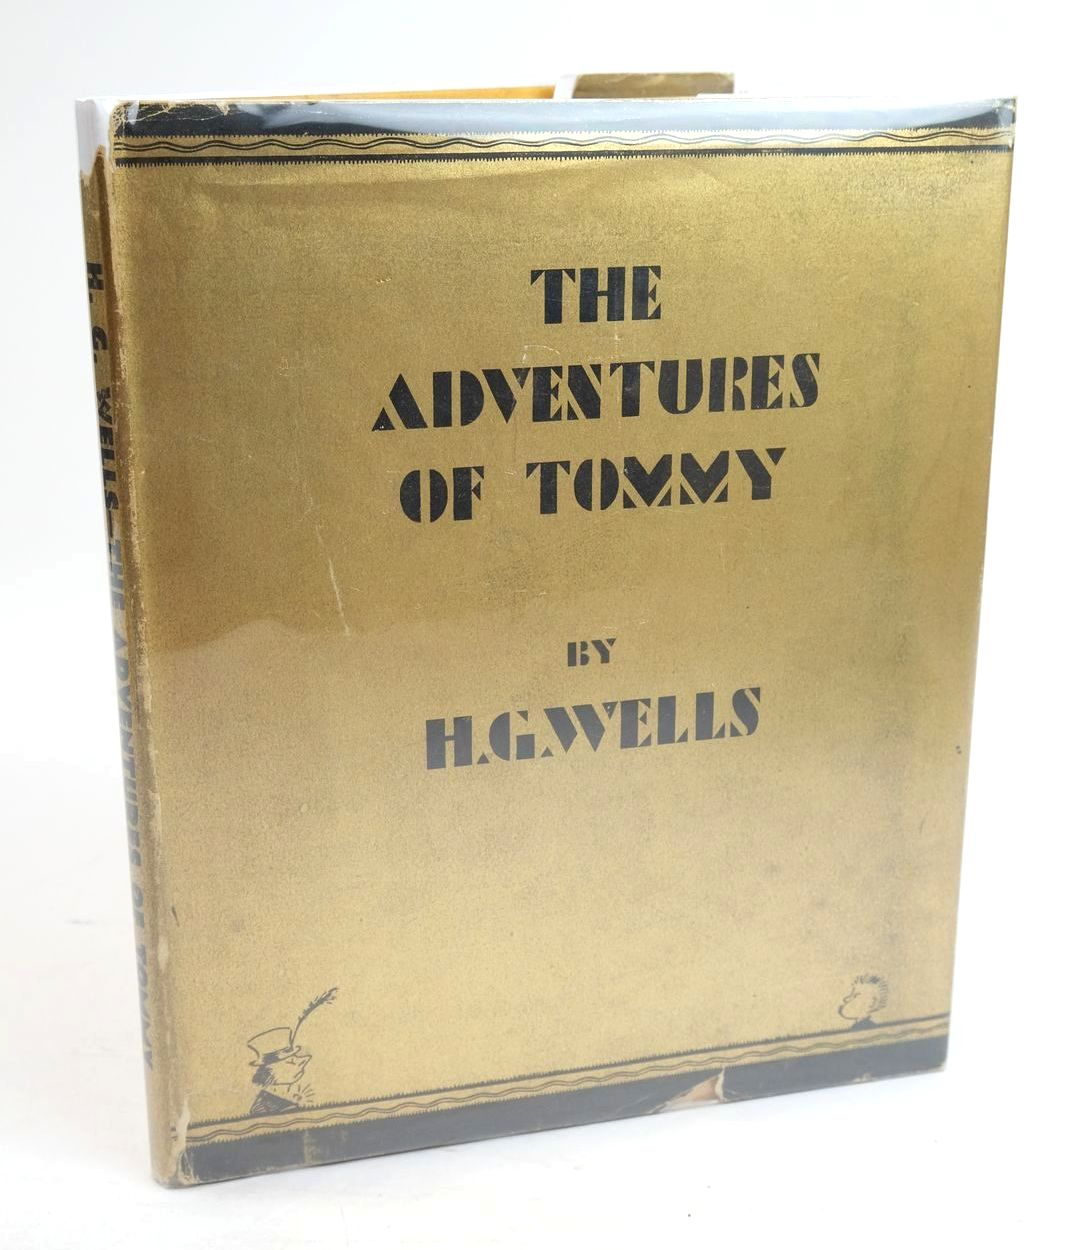 Photo of THE ADVENTURES OF TOMMY written by Wells, H.G. illustrated by Wells, H.G. published by George G. Harrap & Co. Ltd. (STOCK CODE: 1320086)  for sale by Stella & Rose's Books